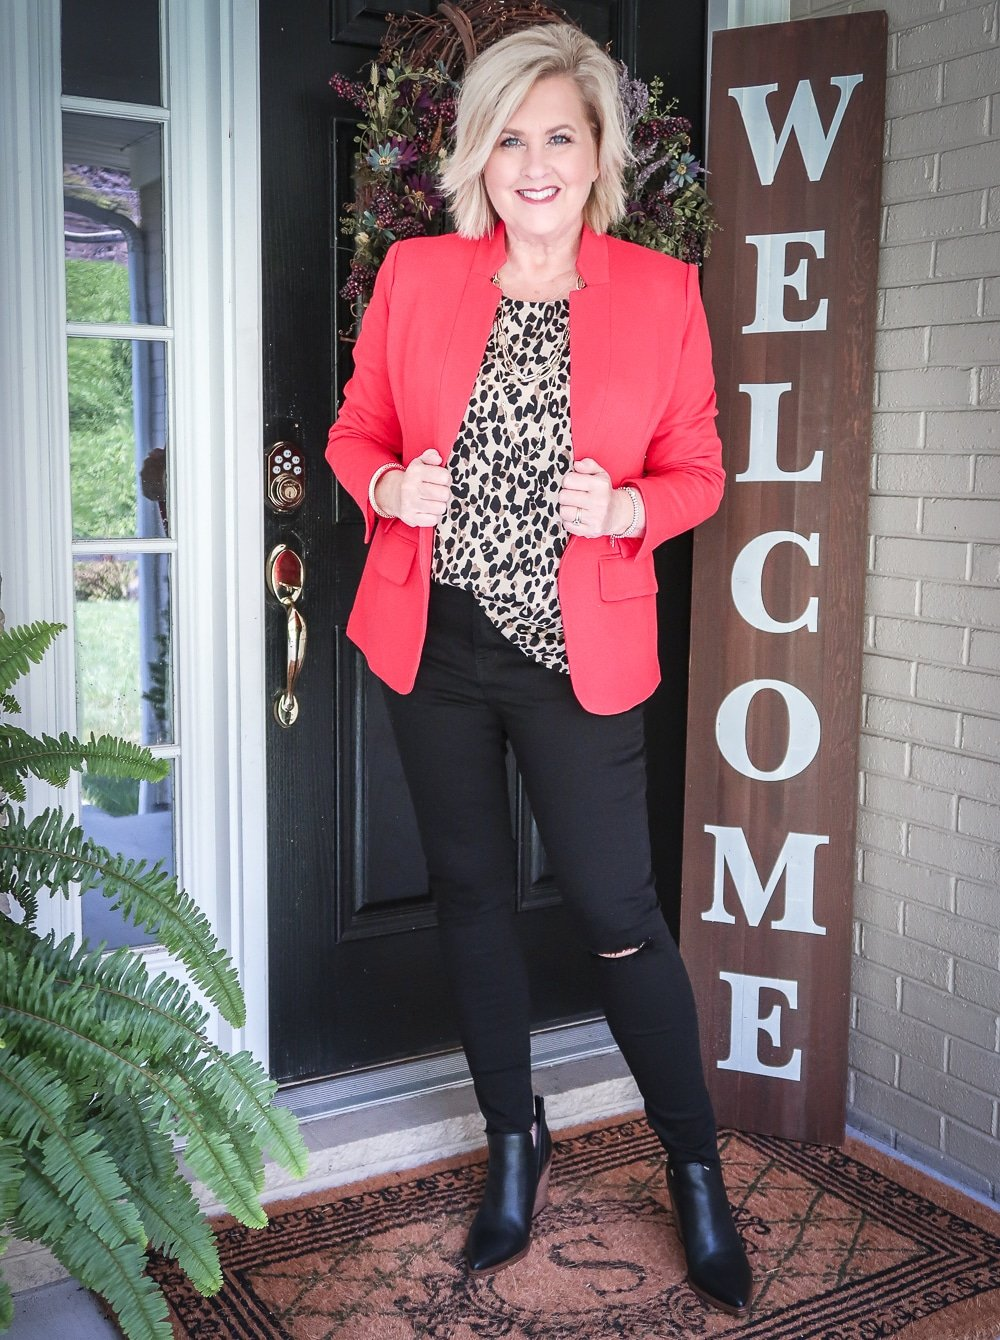 Fashion Blogger 50 Is Not Old is wearing a leopard print statement top, a red blazer, and a pair of black distressed jeans by Madewell